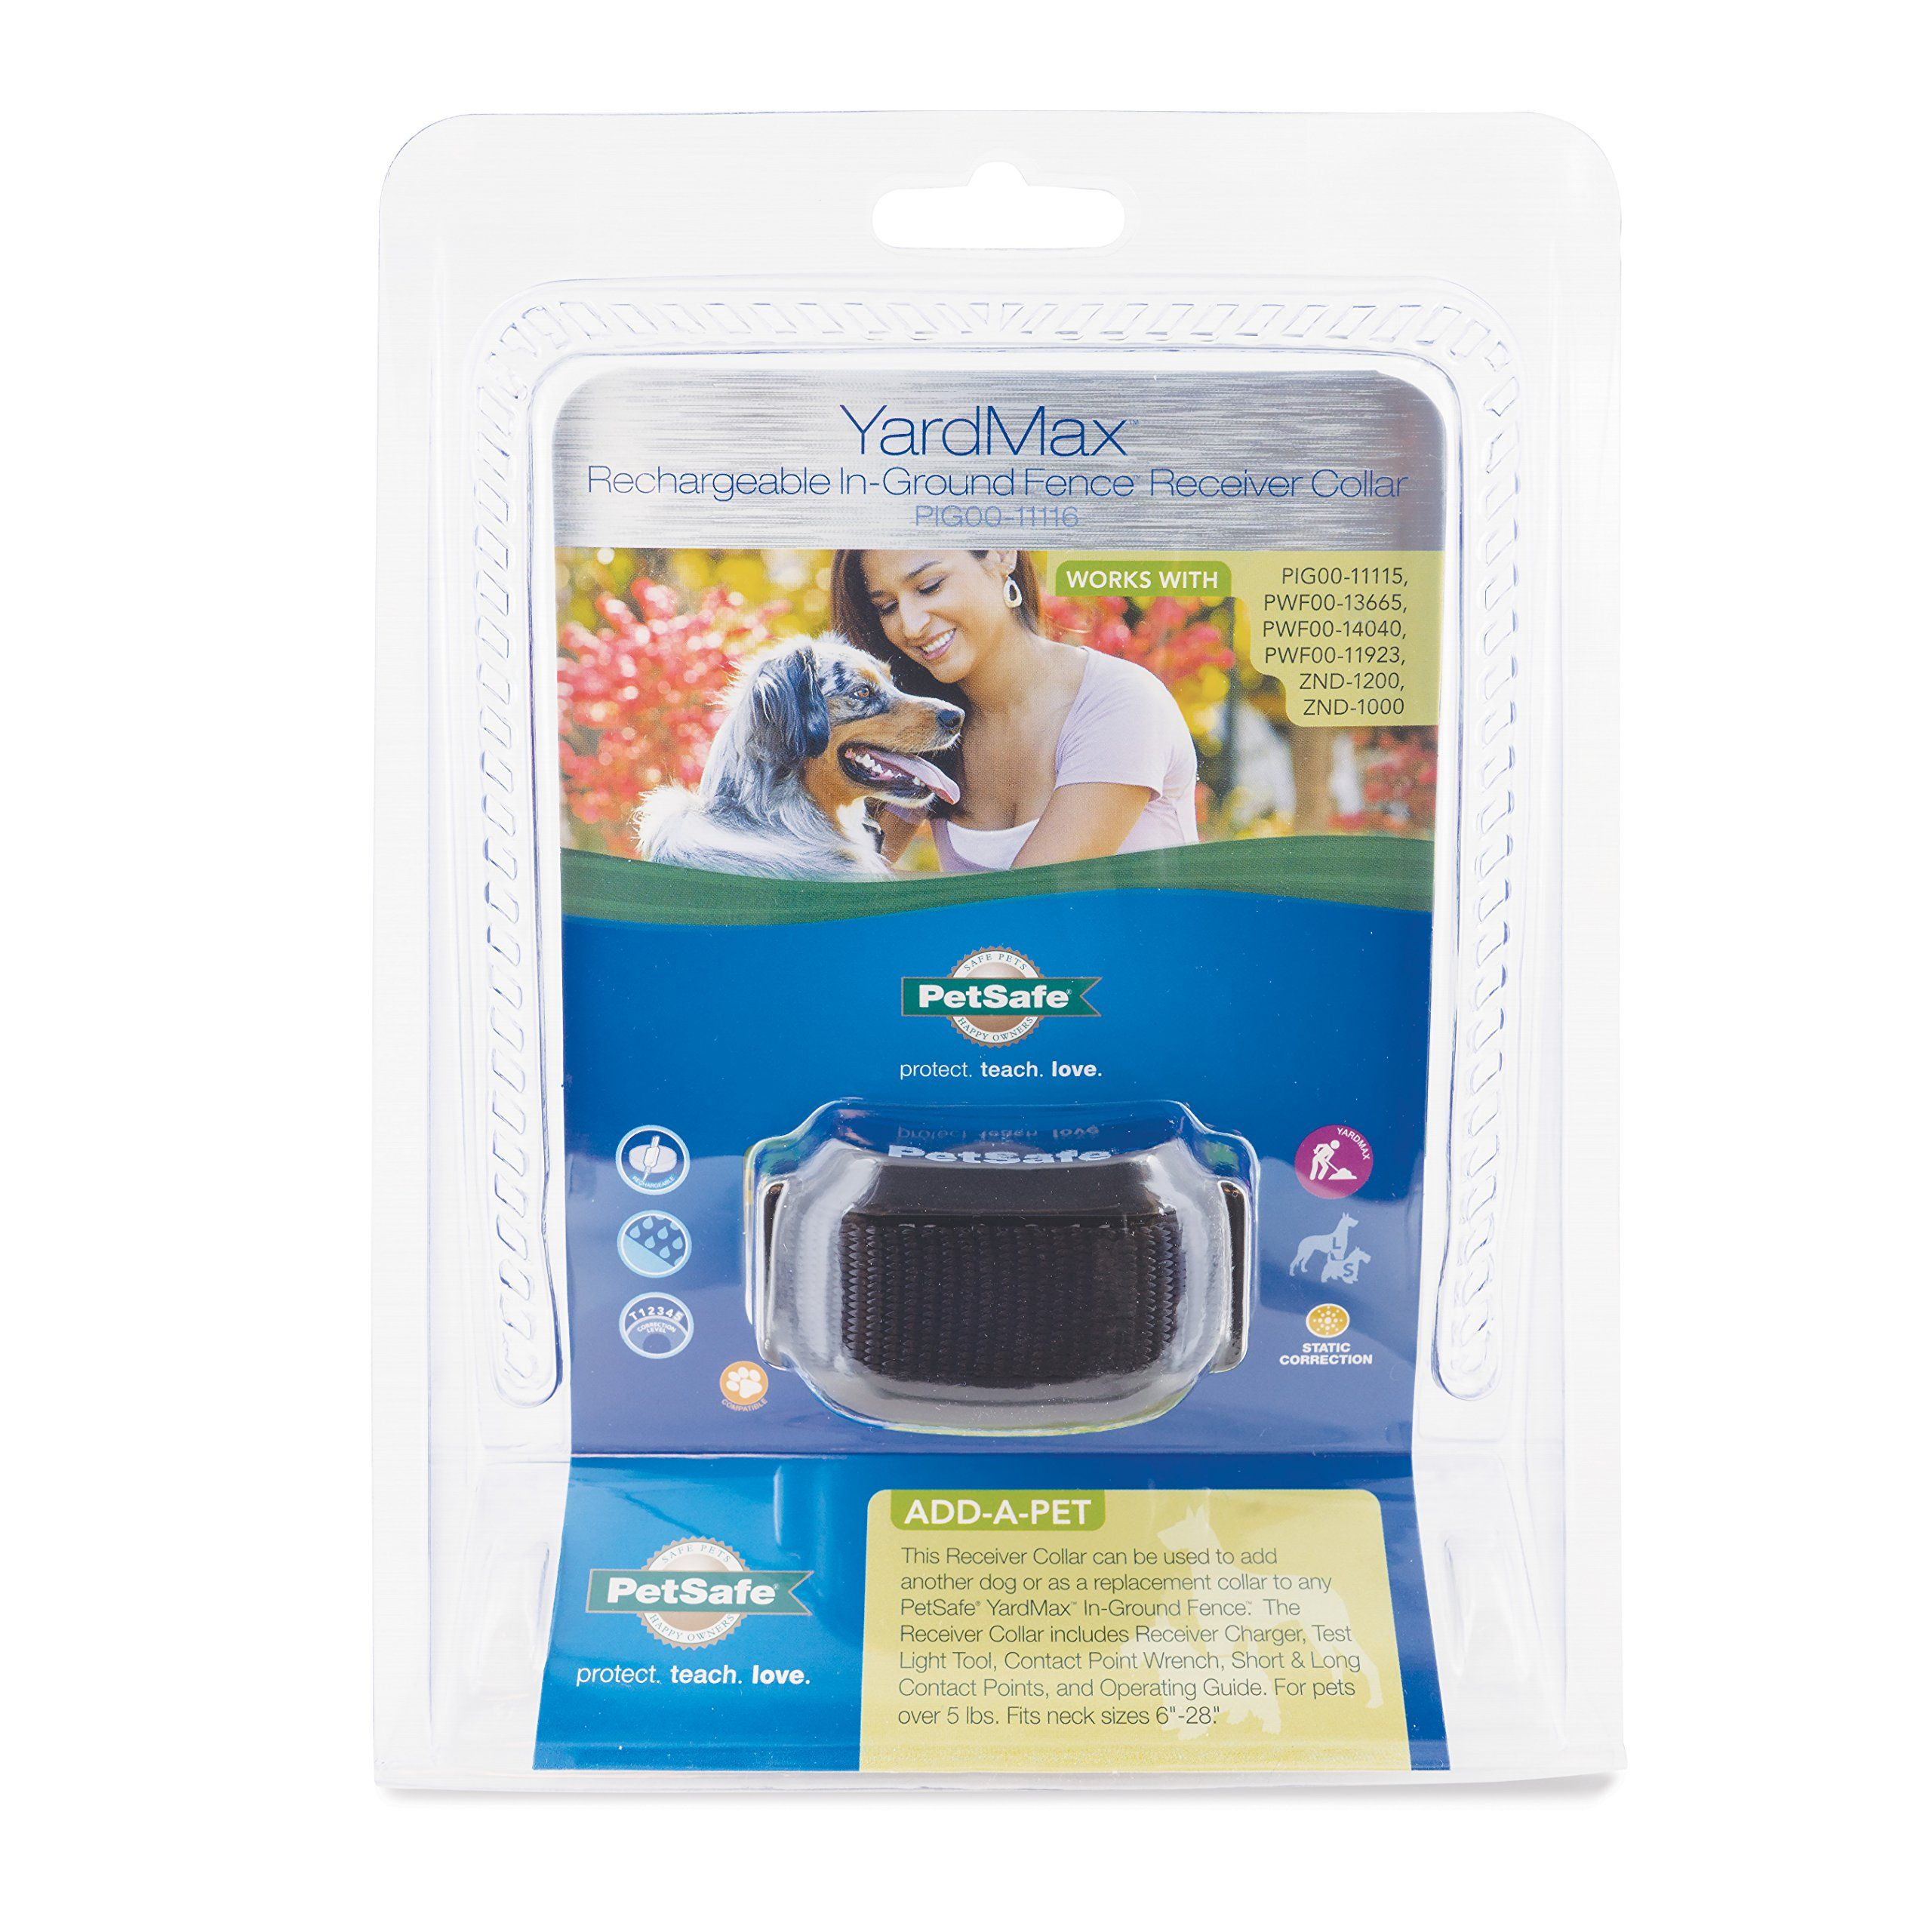 PetSafe YardMax Rechargeable InGround Fence Receiver